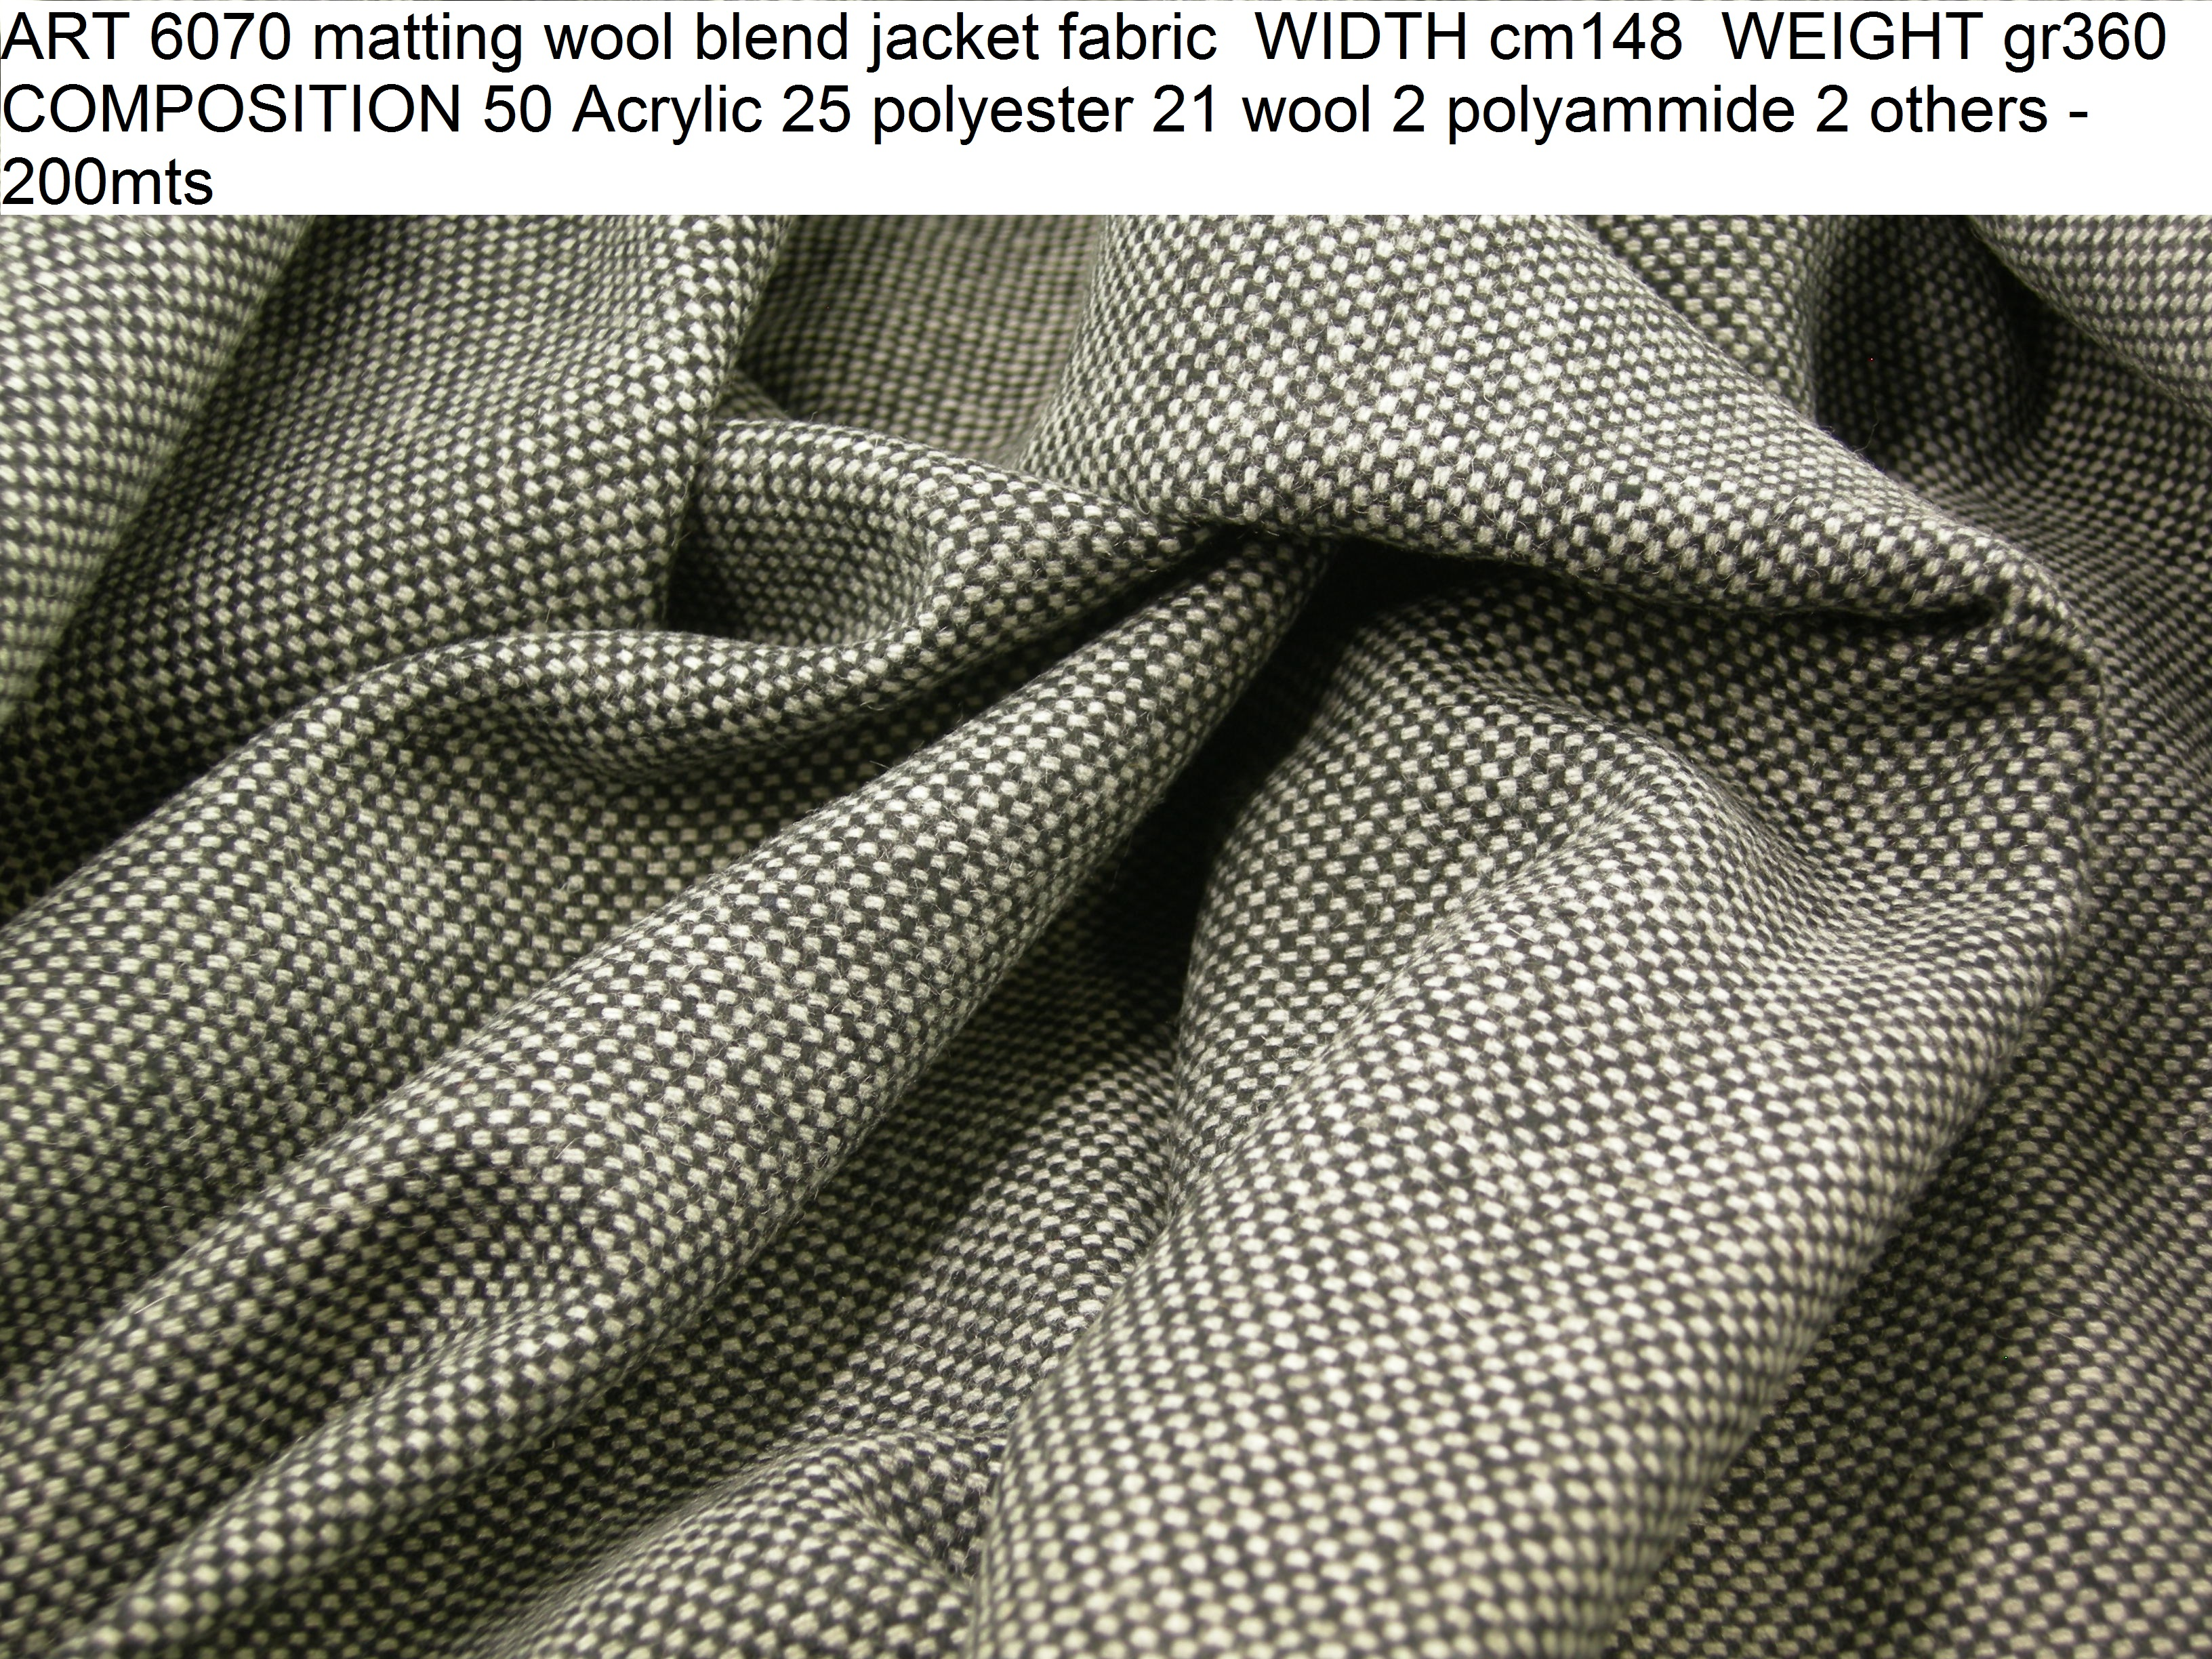 ART 6070 matting wool blend jacket fabric WIDTH cm148 WEIGHT gr360 COMPOSITION 50 Acrylic 25 polyester 21 wool 2 polyammide 2 others - 200mts